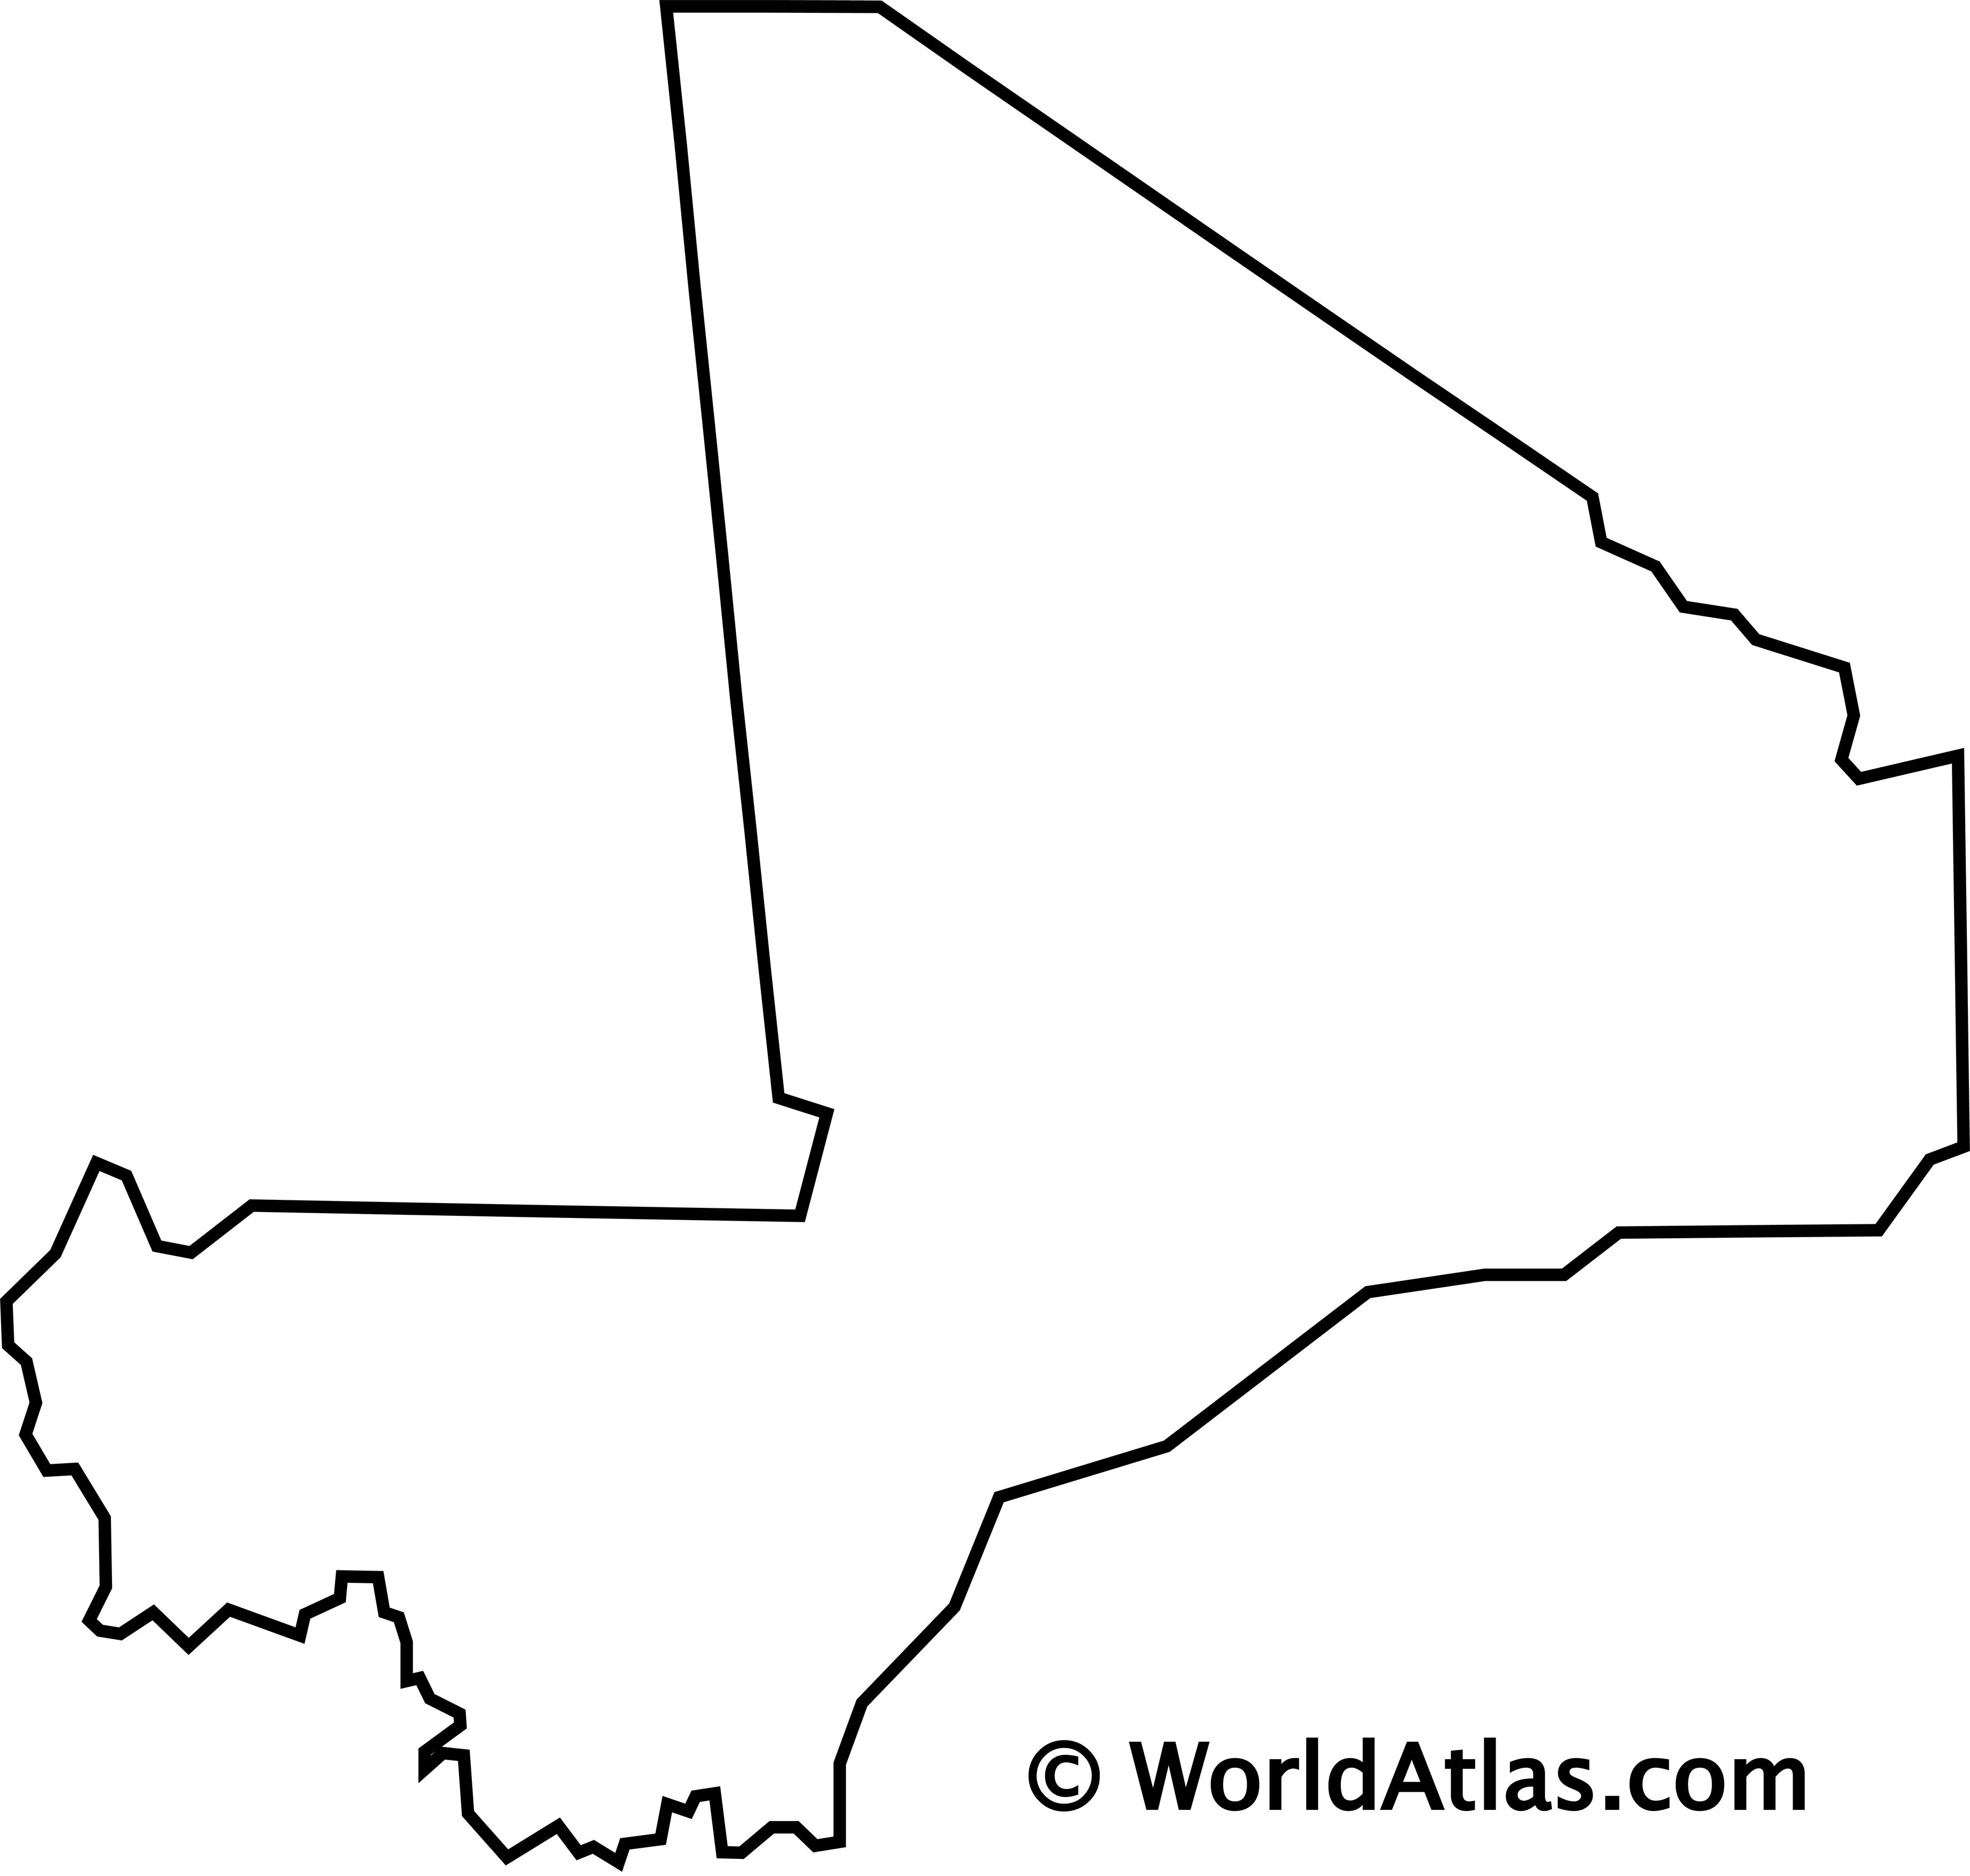 Blank Outline Map of Mali